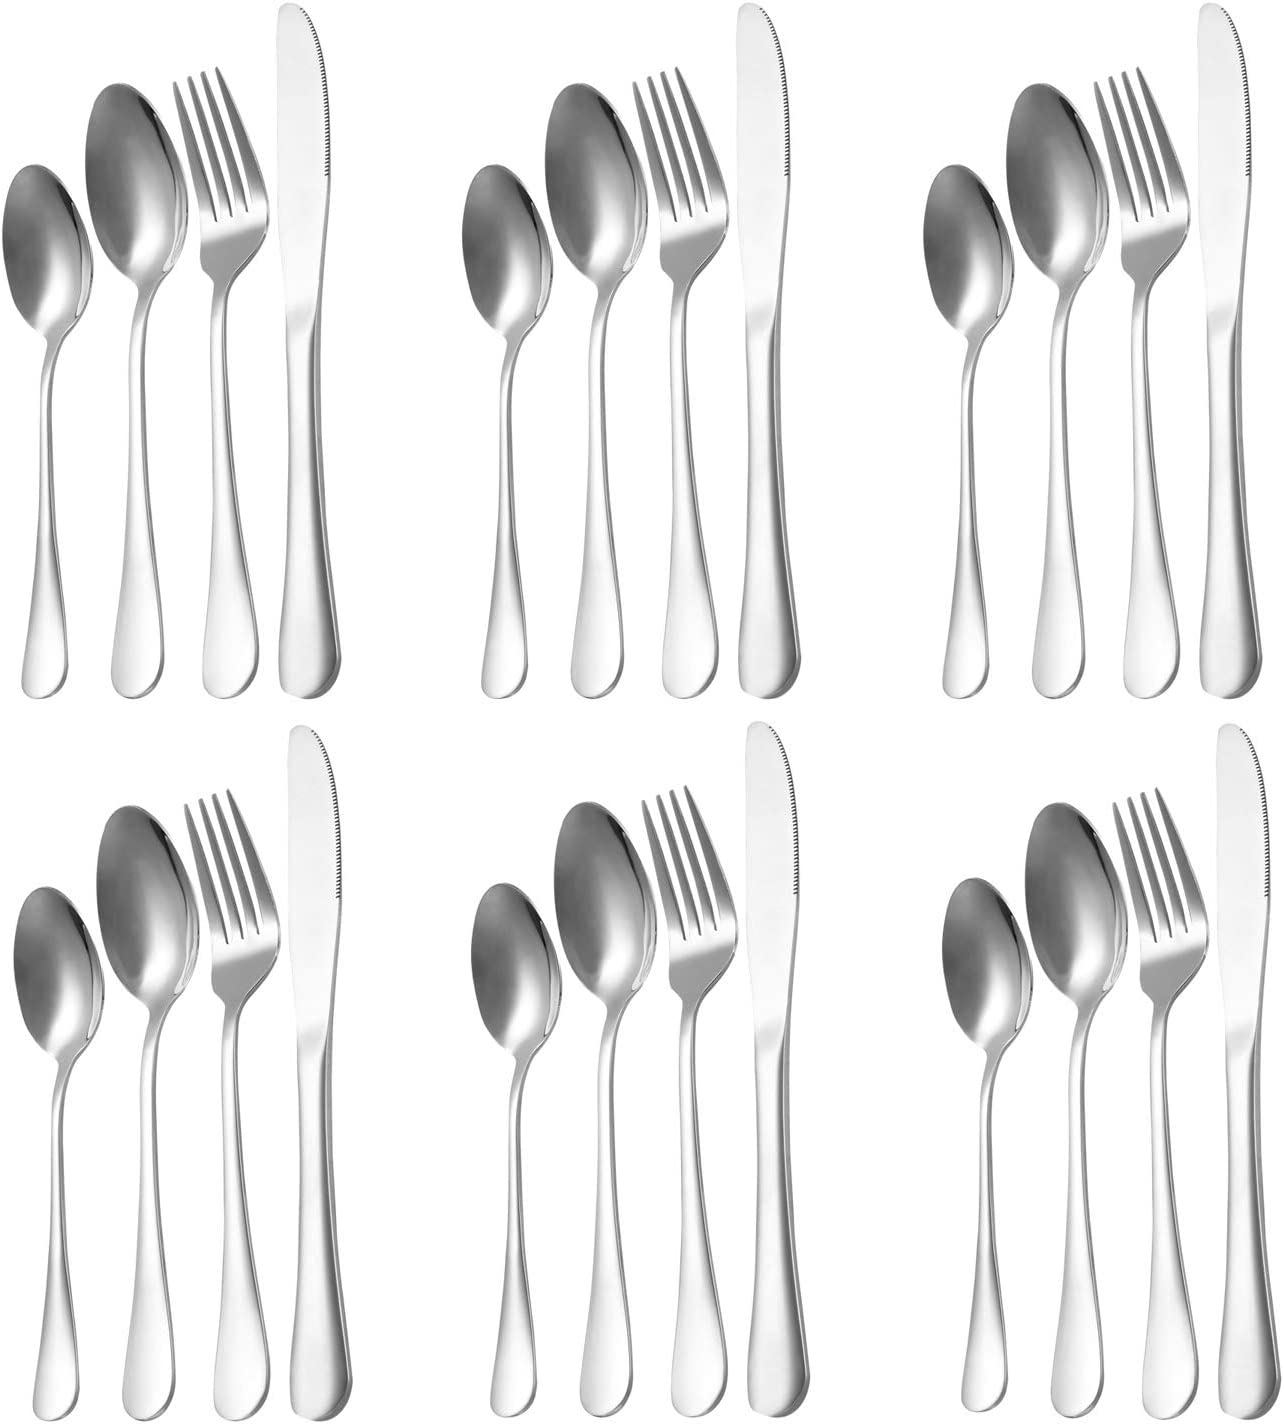 MEGOO 24-Piece Silverware Flatware Cutlery Set Service For 6,Stainless Steel Utensils Set For Home Kitchen Restaurant Hotel,Mirror Polished,Stain And Rust Resistant,Knife/Fork/Spoon,Dishwasher Safe